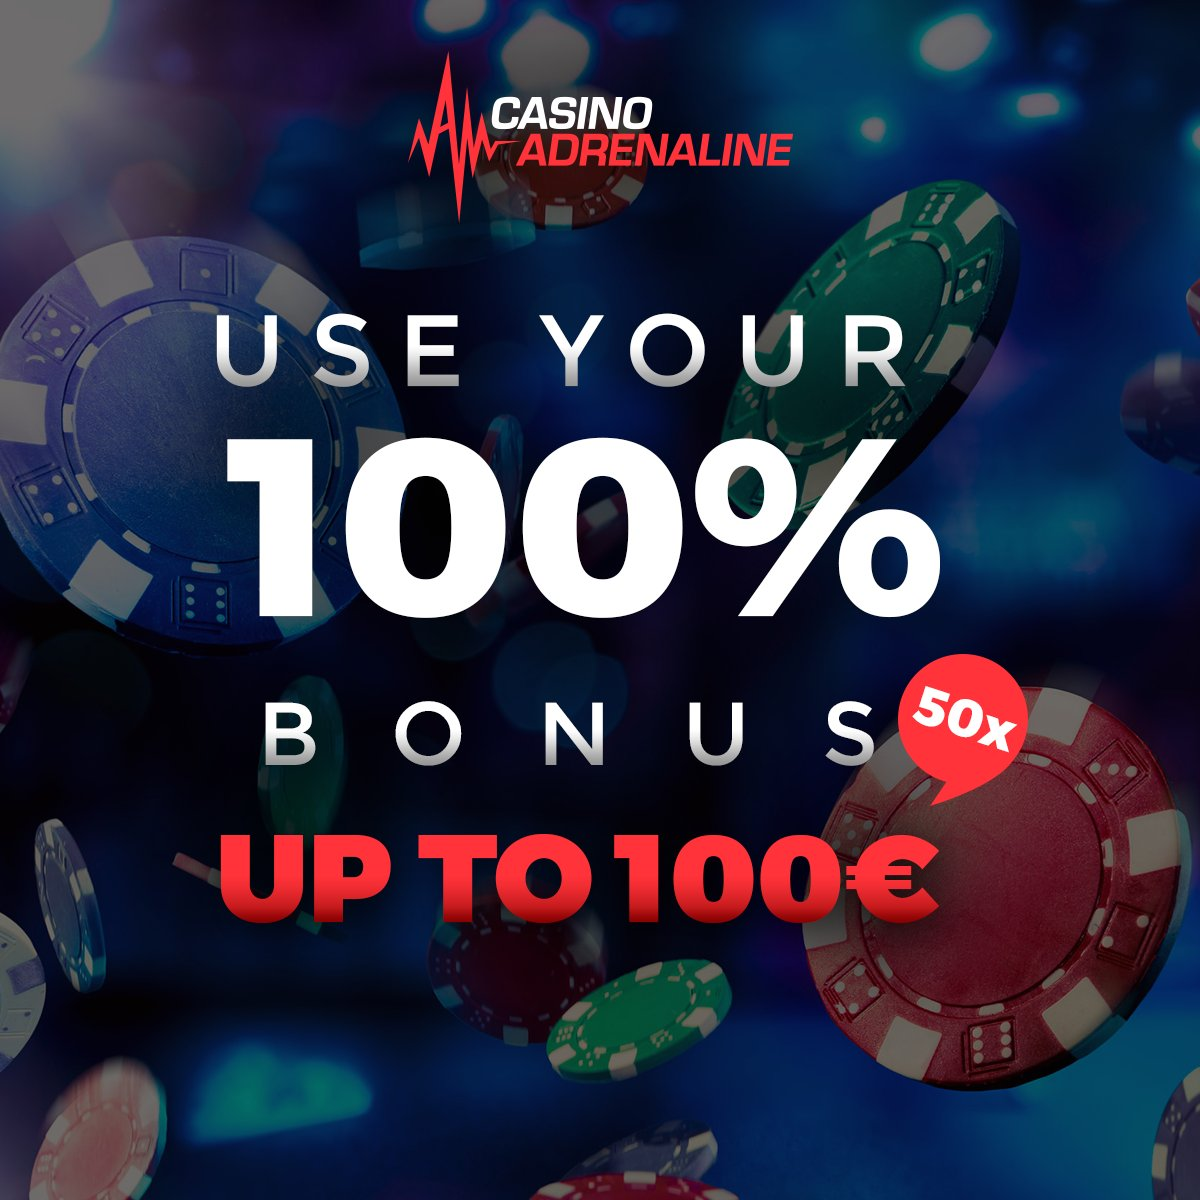 test Twitter Media - There is only one word for this combination, awesome! Use your 100% bonus up to 100 EUR 50x, bonus and deposit! 👌😄 #CasinoAdrenaline #CasinoAdrenalinebonus #playthegame #casinoslots https://t.co/uLDFltdZz2